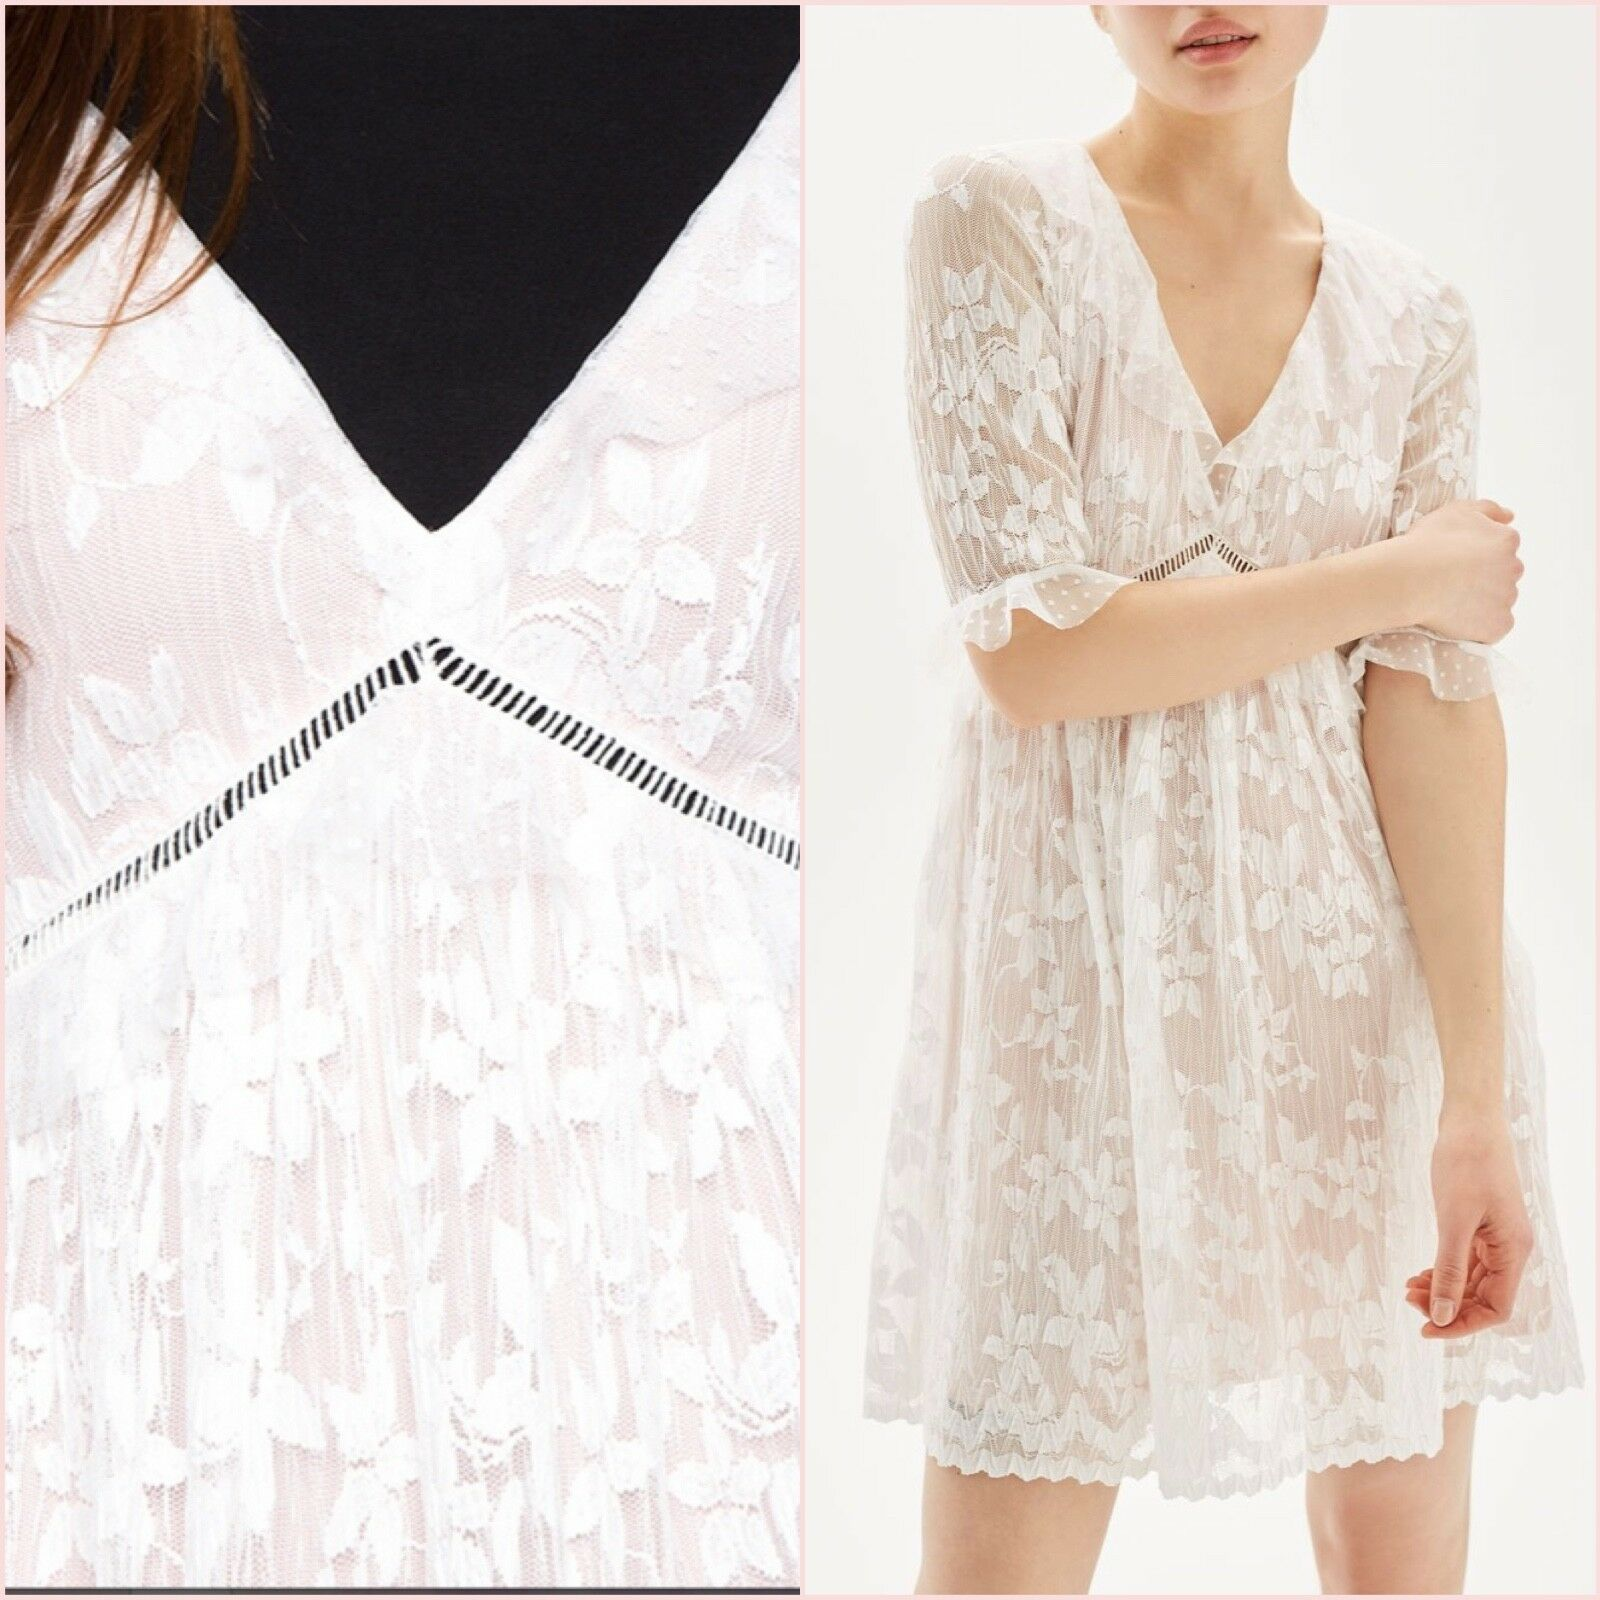 Topshop White Pleated Lace Floral Short Sleeve Dress Size 14 US 10 Blogger